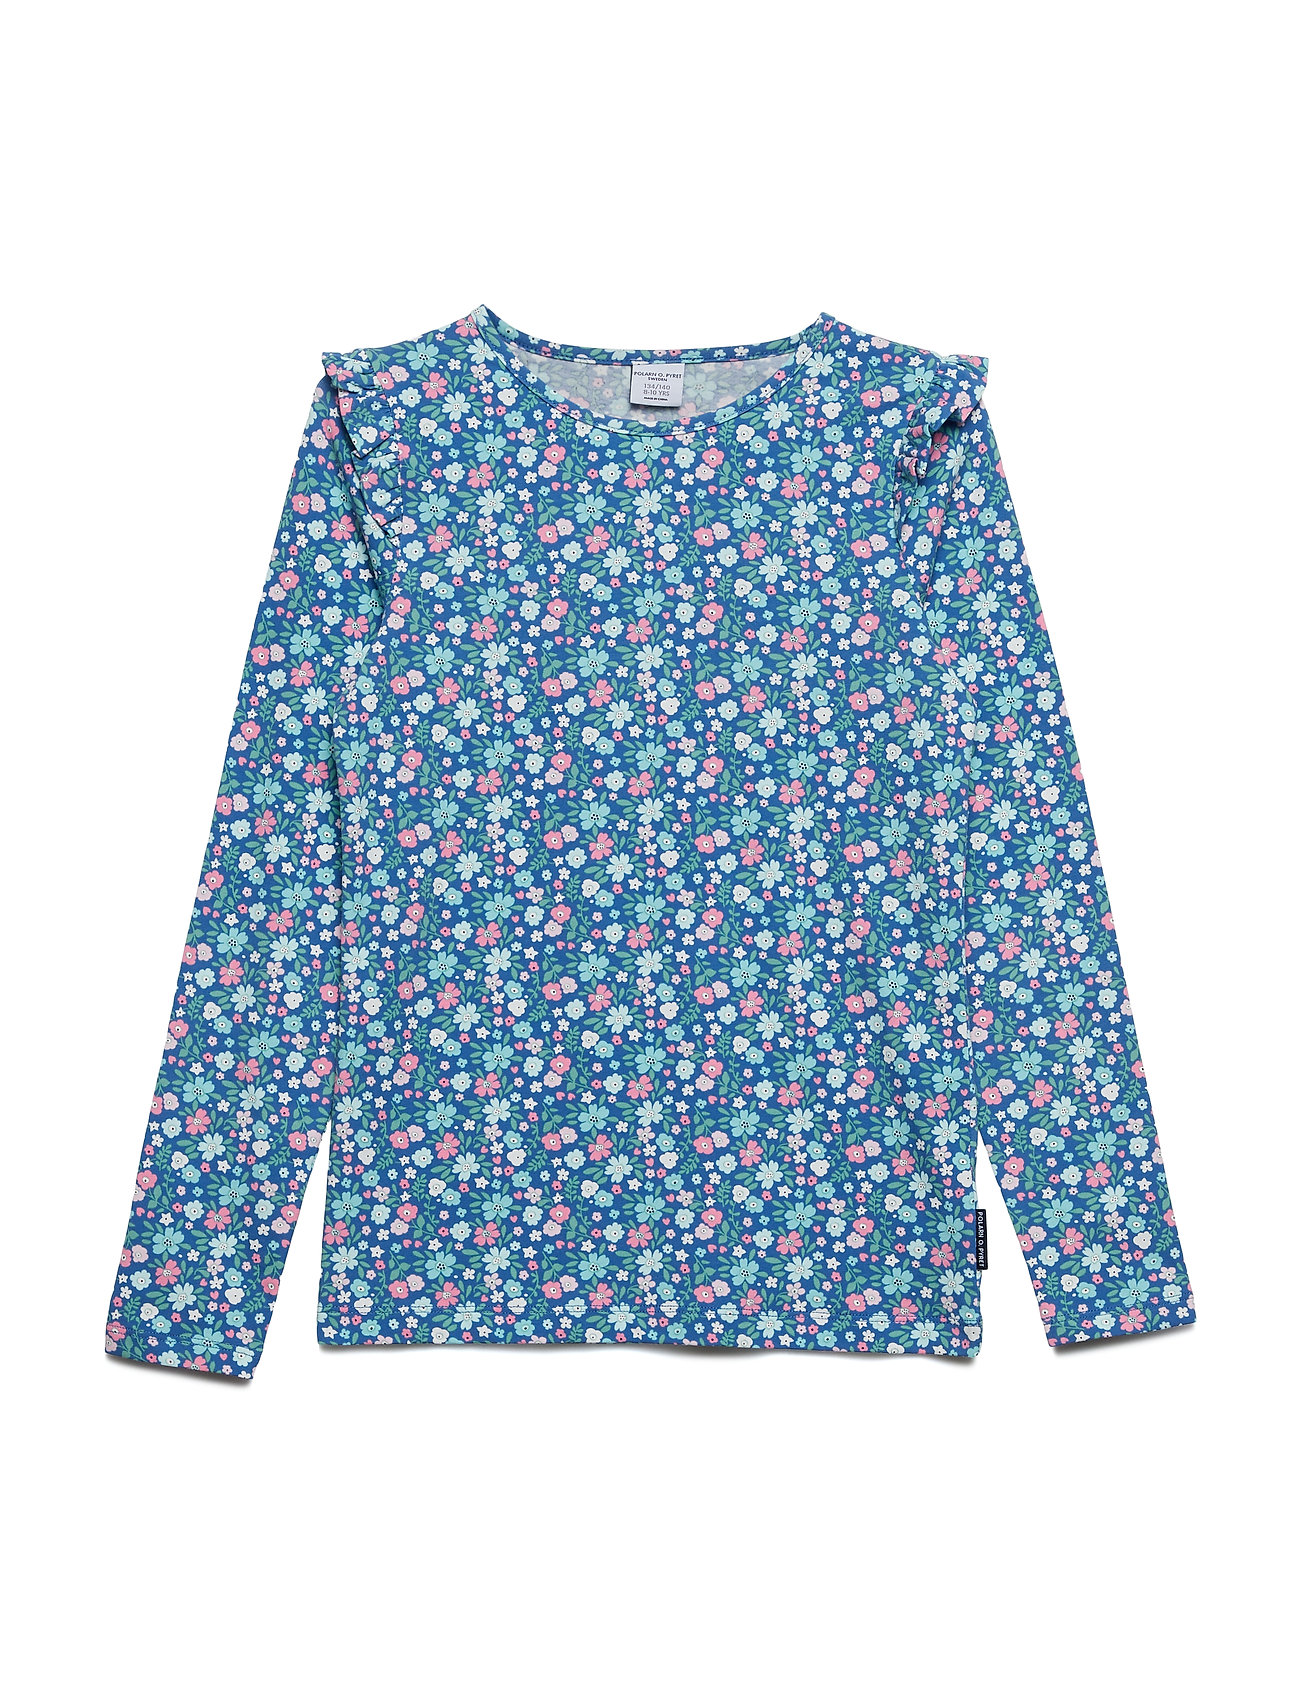 Polarn O. Pyret Top Long Sleeve with print School